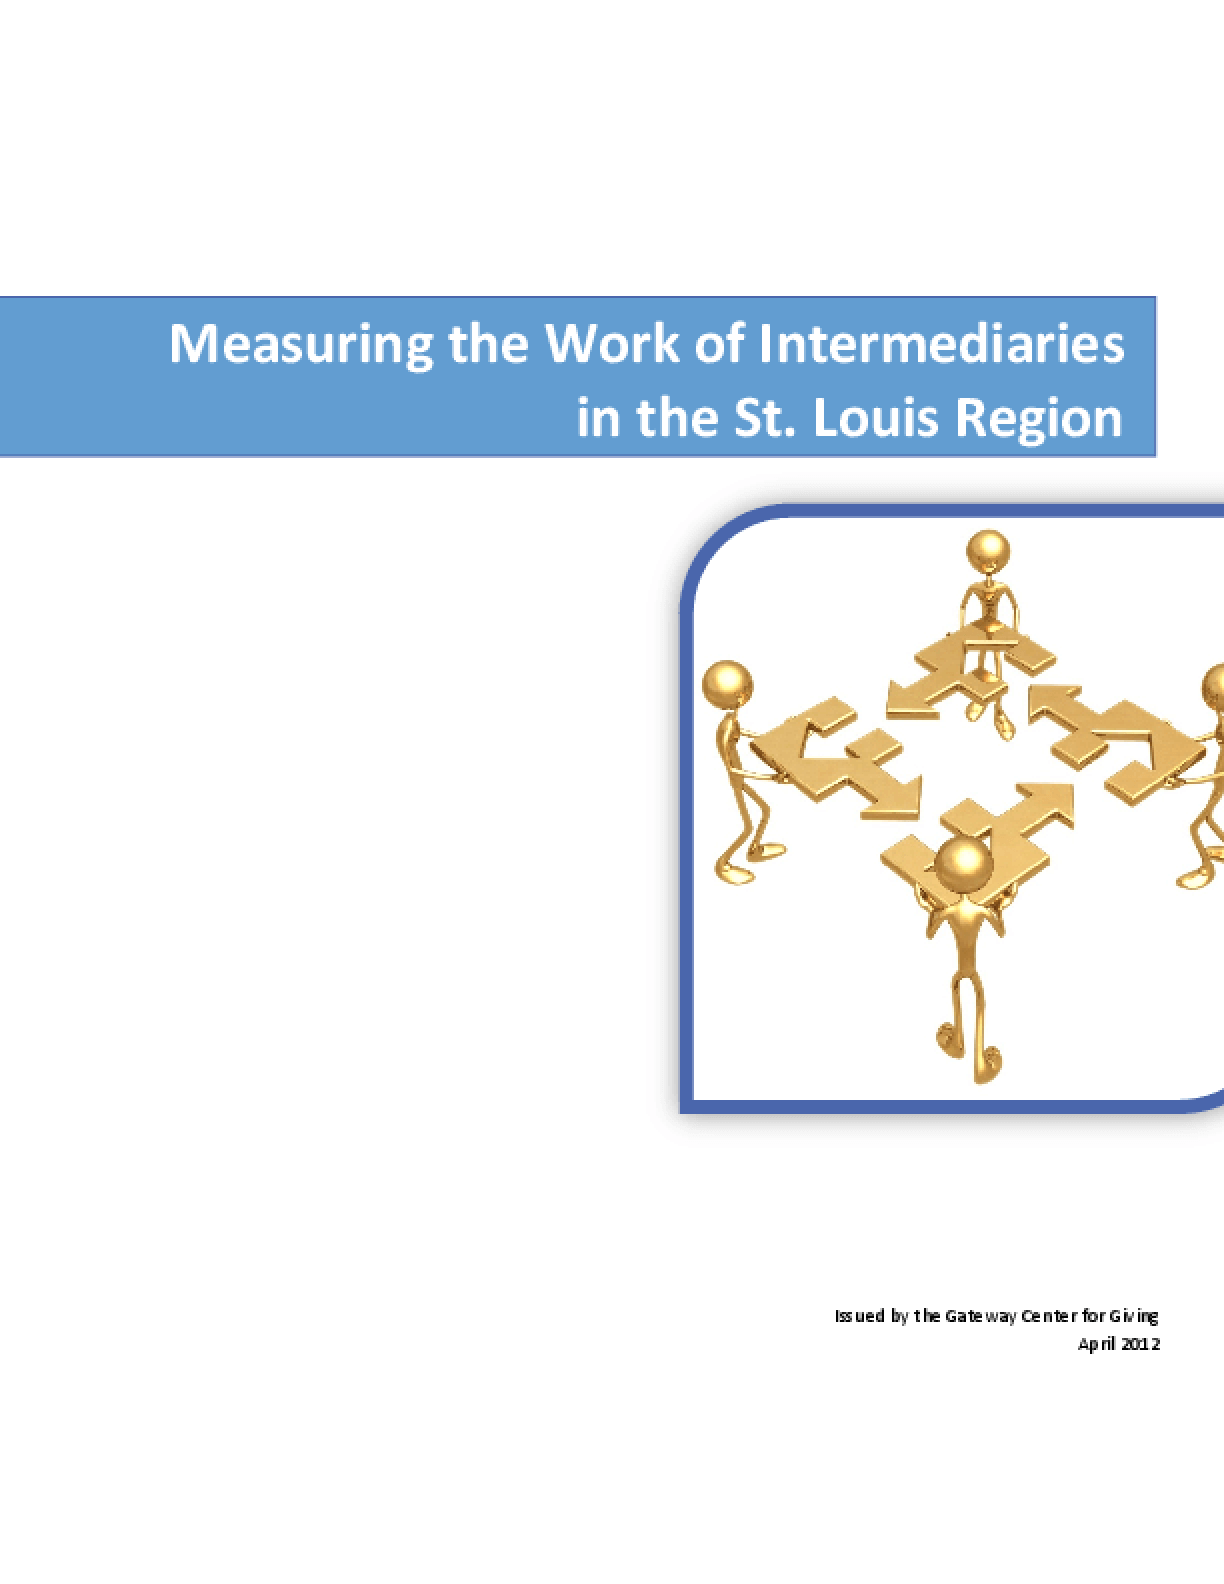 Measuring the Work of Intermediaries in the St. Louis Region